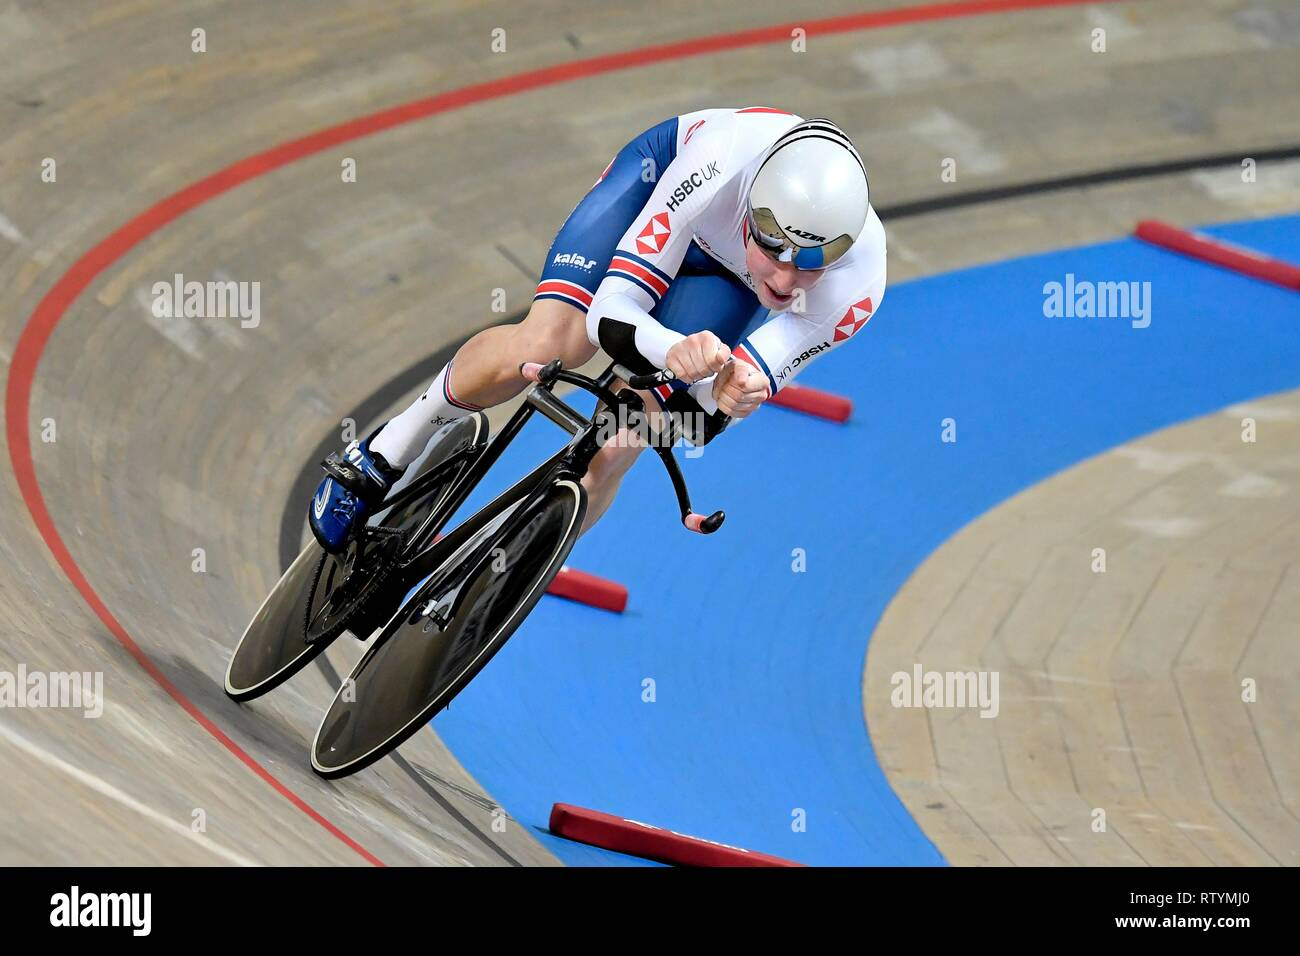 Track Cycling World Championships 2019 Uci On March 1 2019 At Bgz